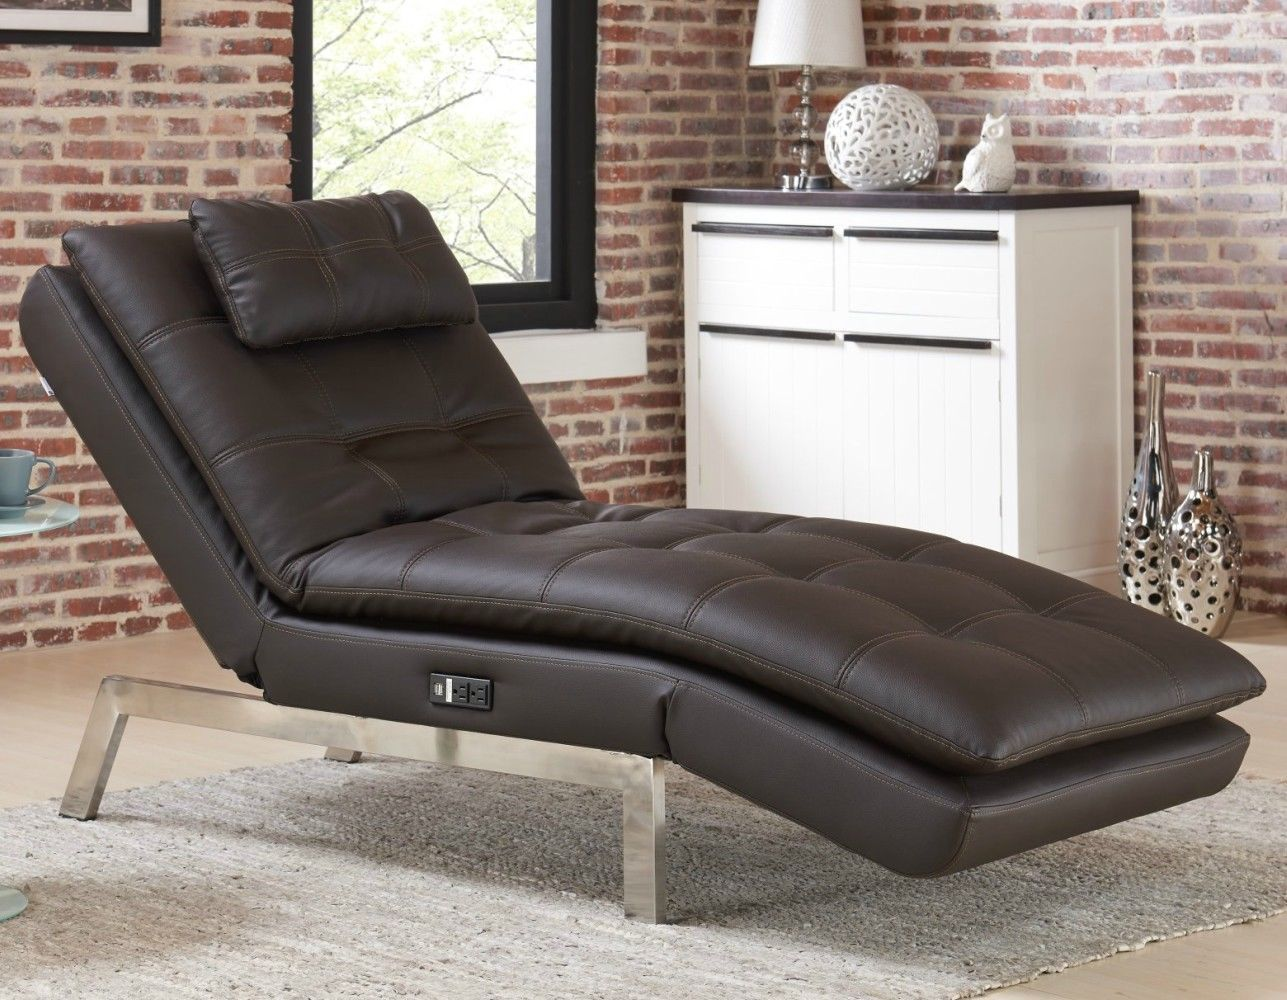 Chaise Barcelona Leather Chaise Lounge Chair Modern Quality Sofa Convertible Gaming